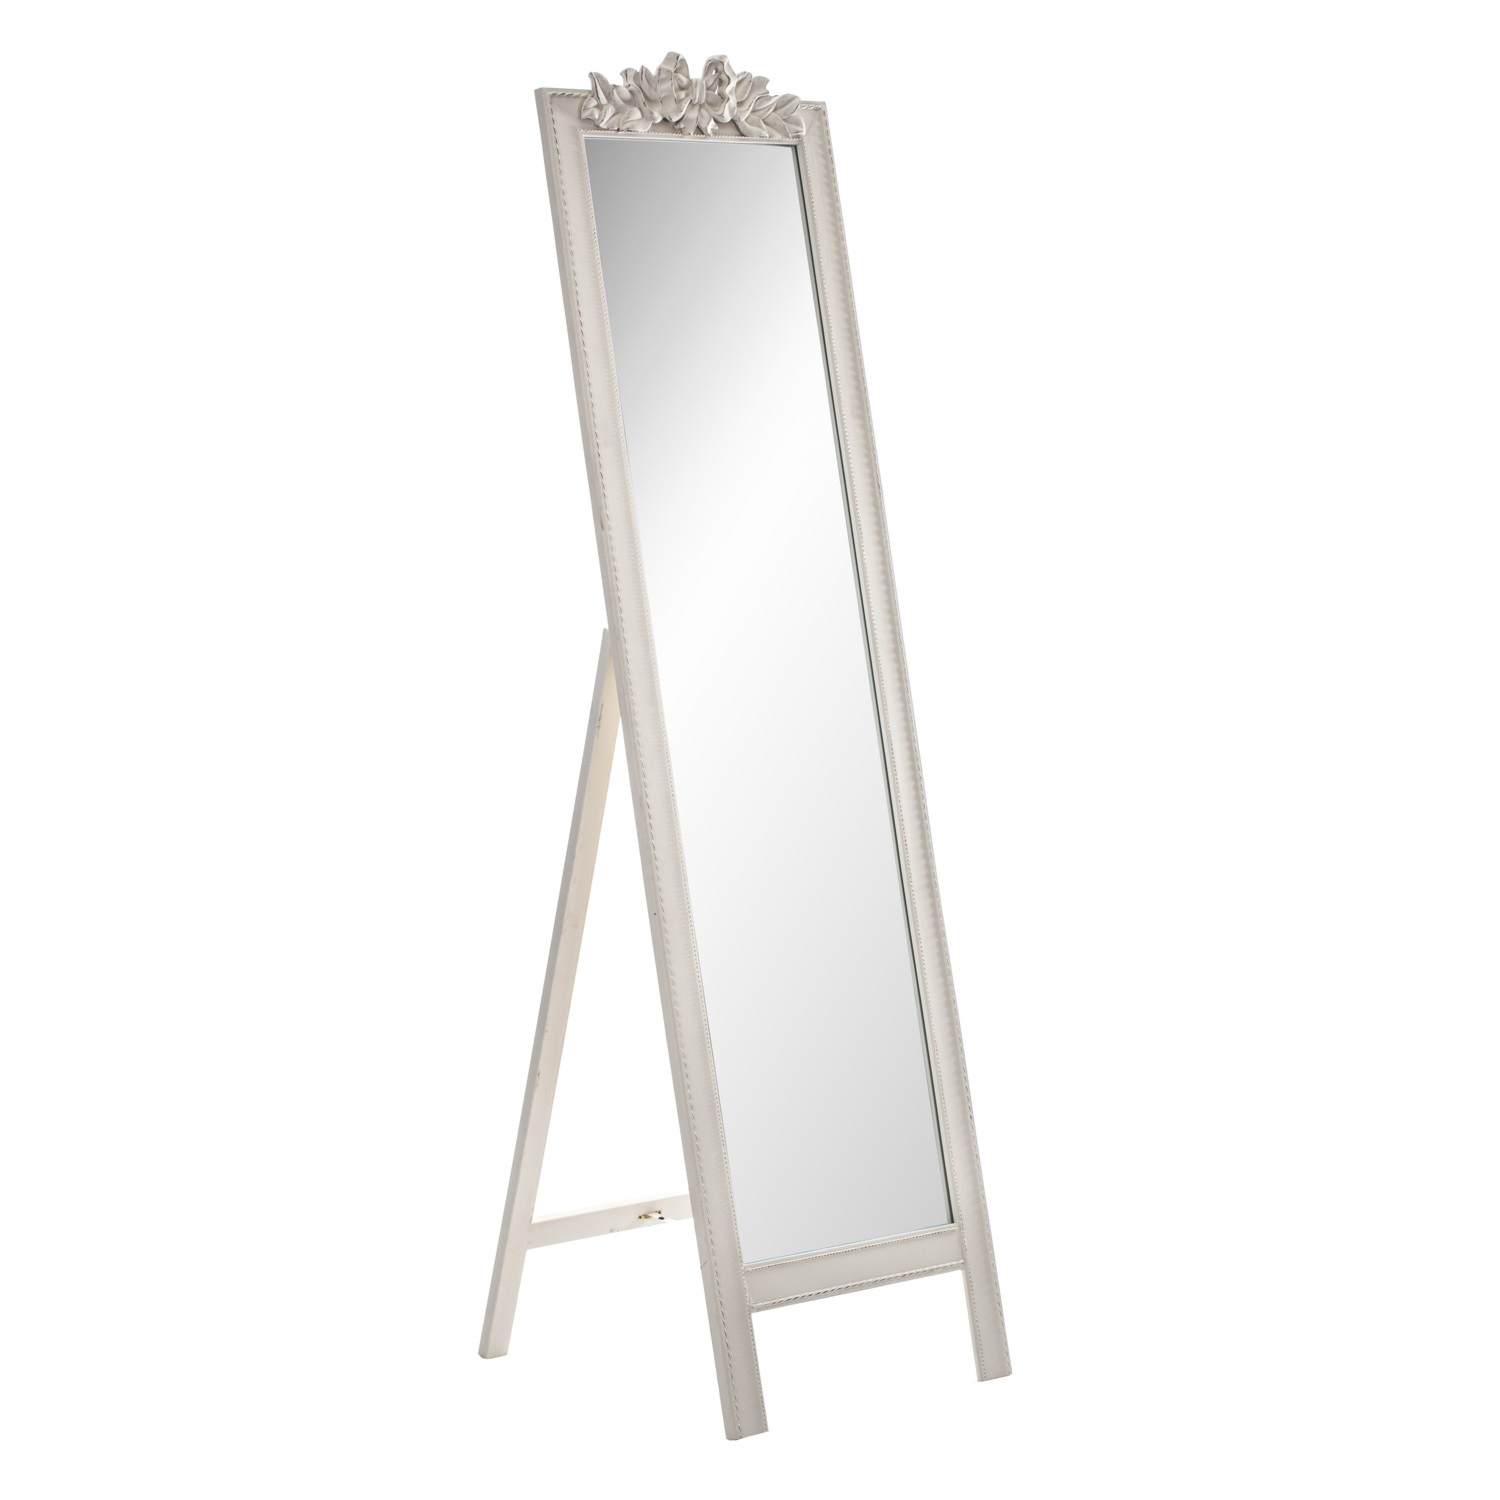 Cheap Floor Standing Mirrors Free Standing Fireplace Gold Black Regarding Black Floor Standing Mirror (Image 5 of 15)